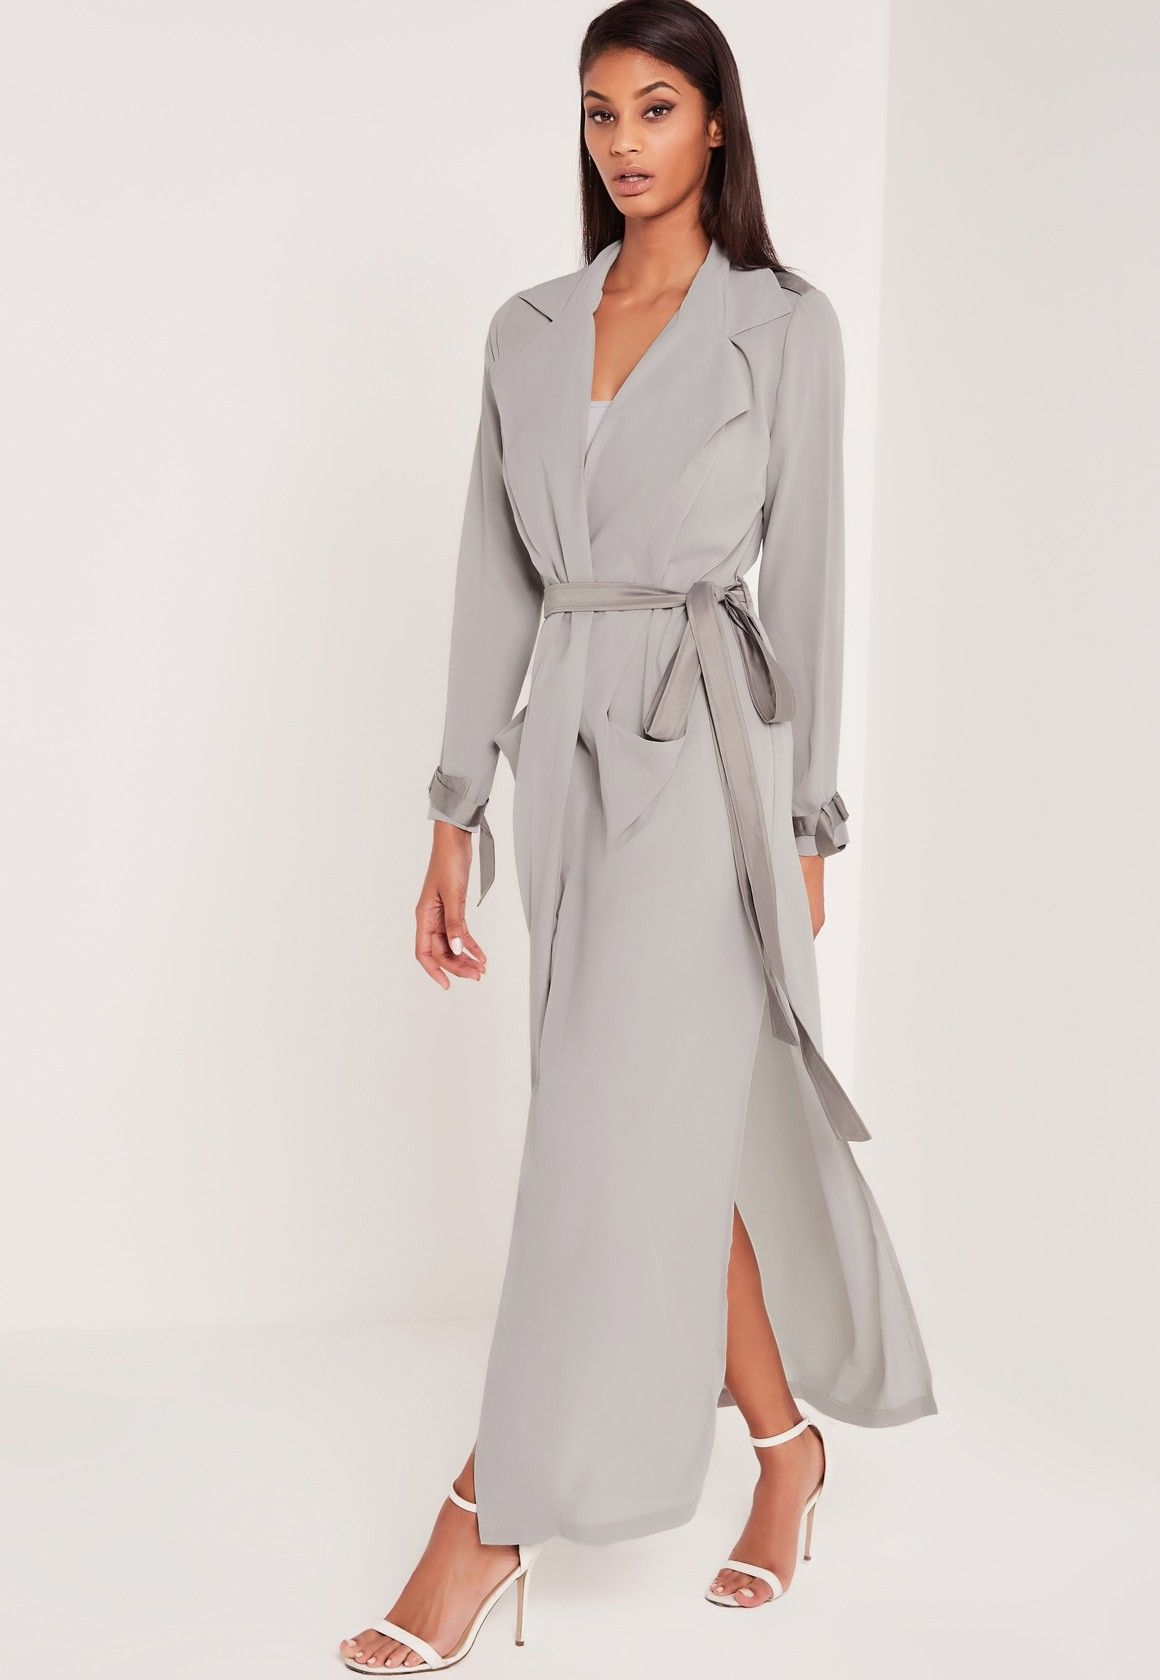 e3f77dcea7 Missguided - Carli Bybel Maxi Duster Coat Grey … | Coats and hats in ...